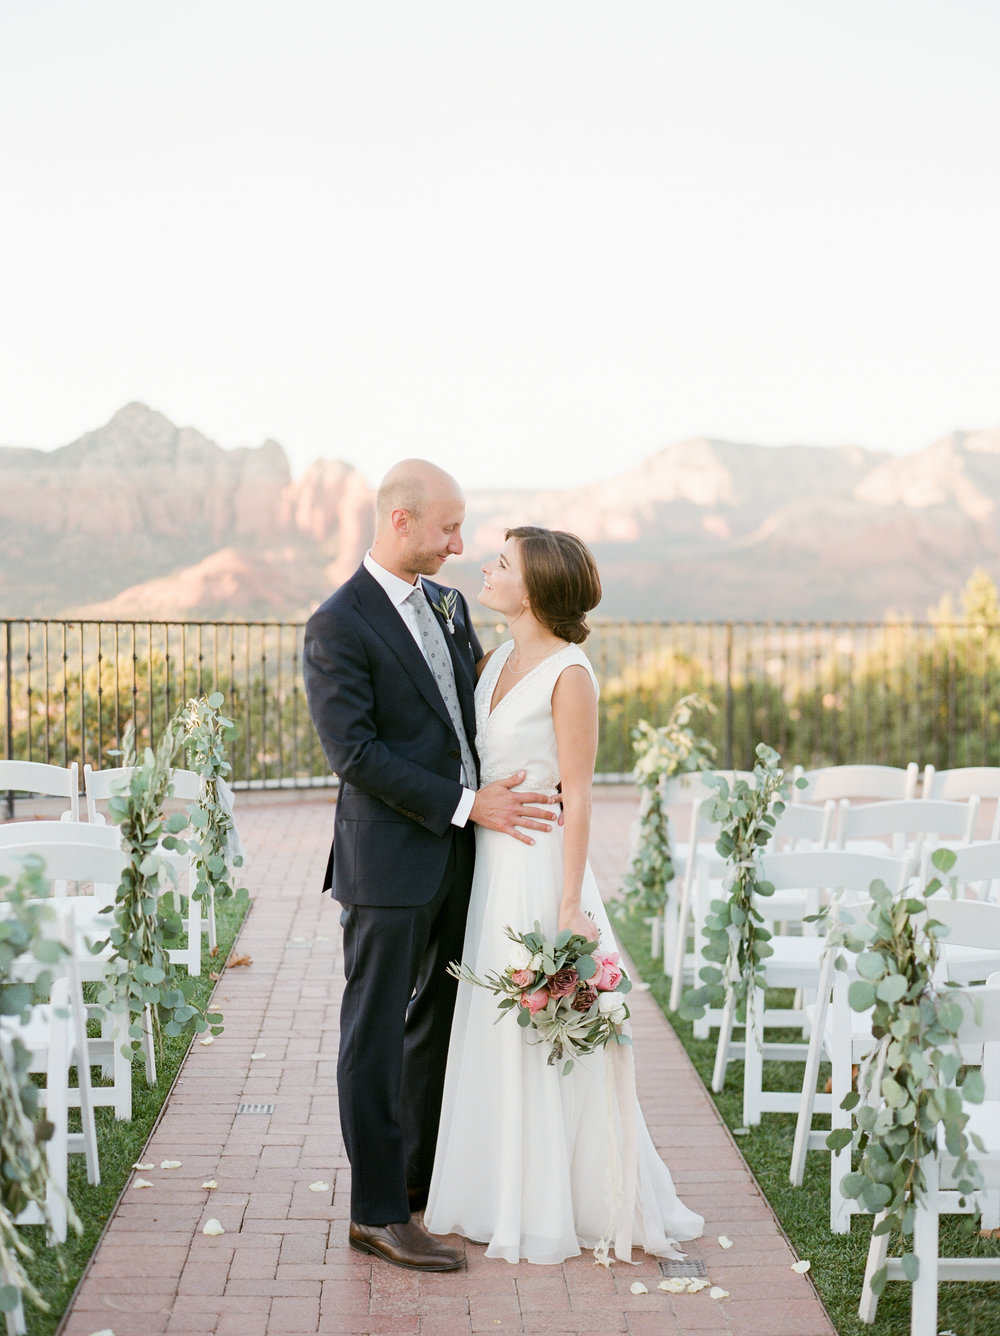 An Intimate Sedona Wedding Nestled in the Arizona Red Rocks  - Tremaine Ranch - AZ Arizona Wedding & Event, Vintage, Furniture, Tableware, & Specialty Rentals in Phoenix, Tucson, Flagstaff, Sedona, Tempe, Chandler, Mesa, Gilbert, Prescott, Payson 566.jpg